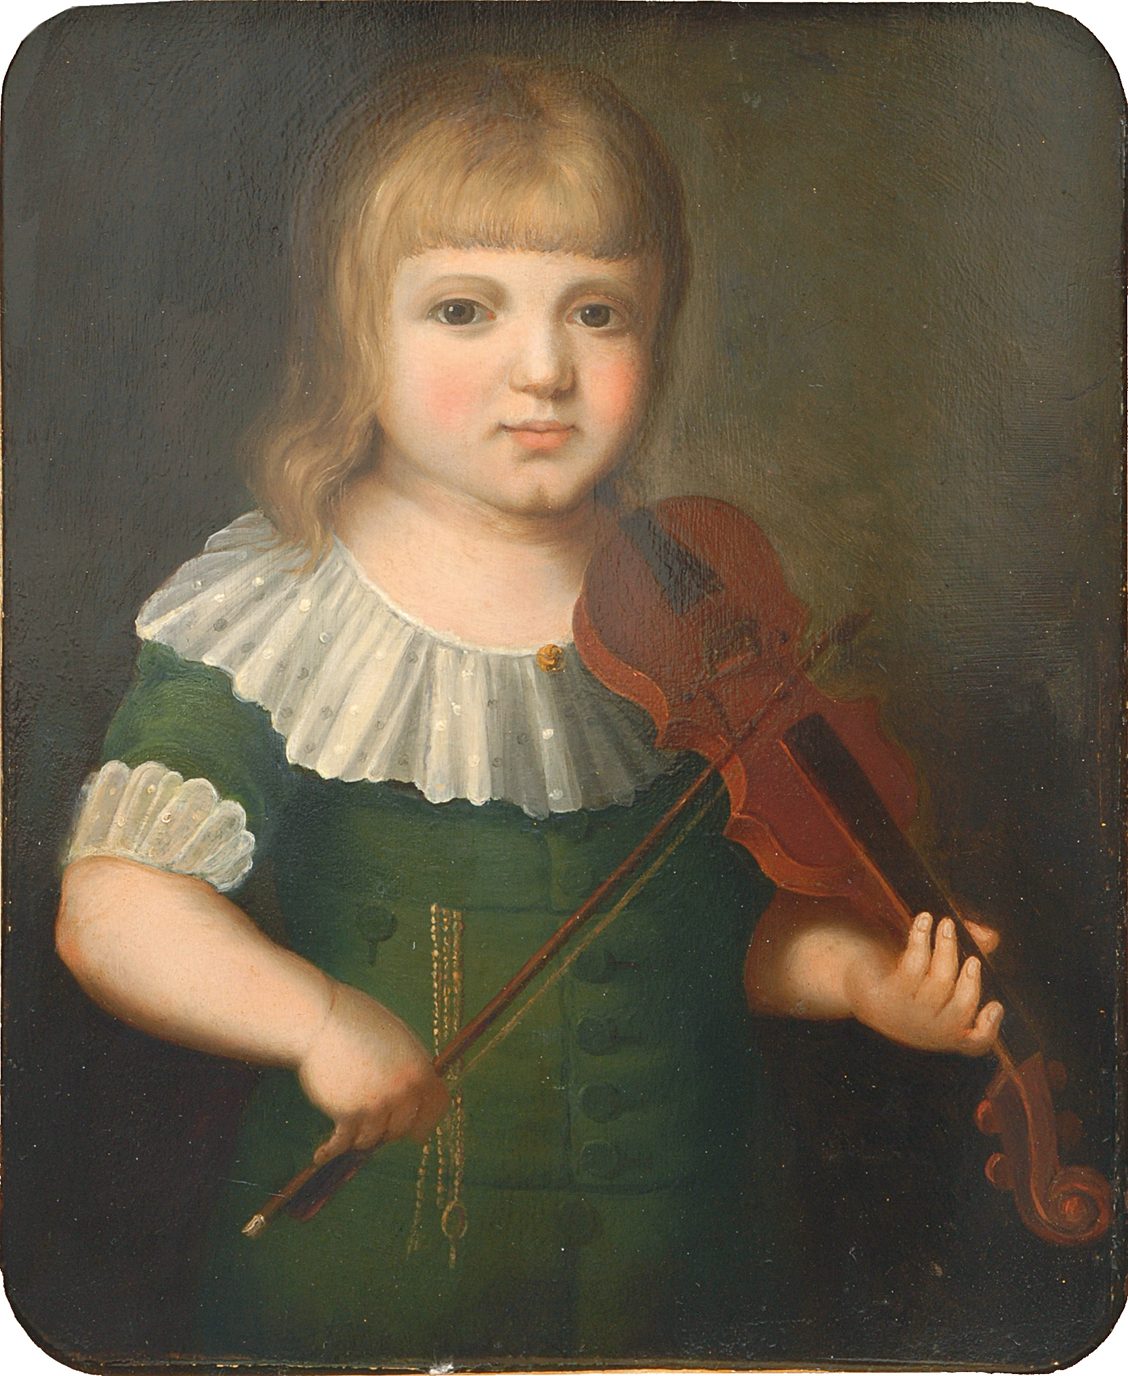 A young violin player